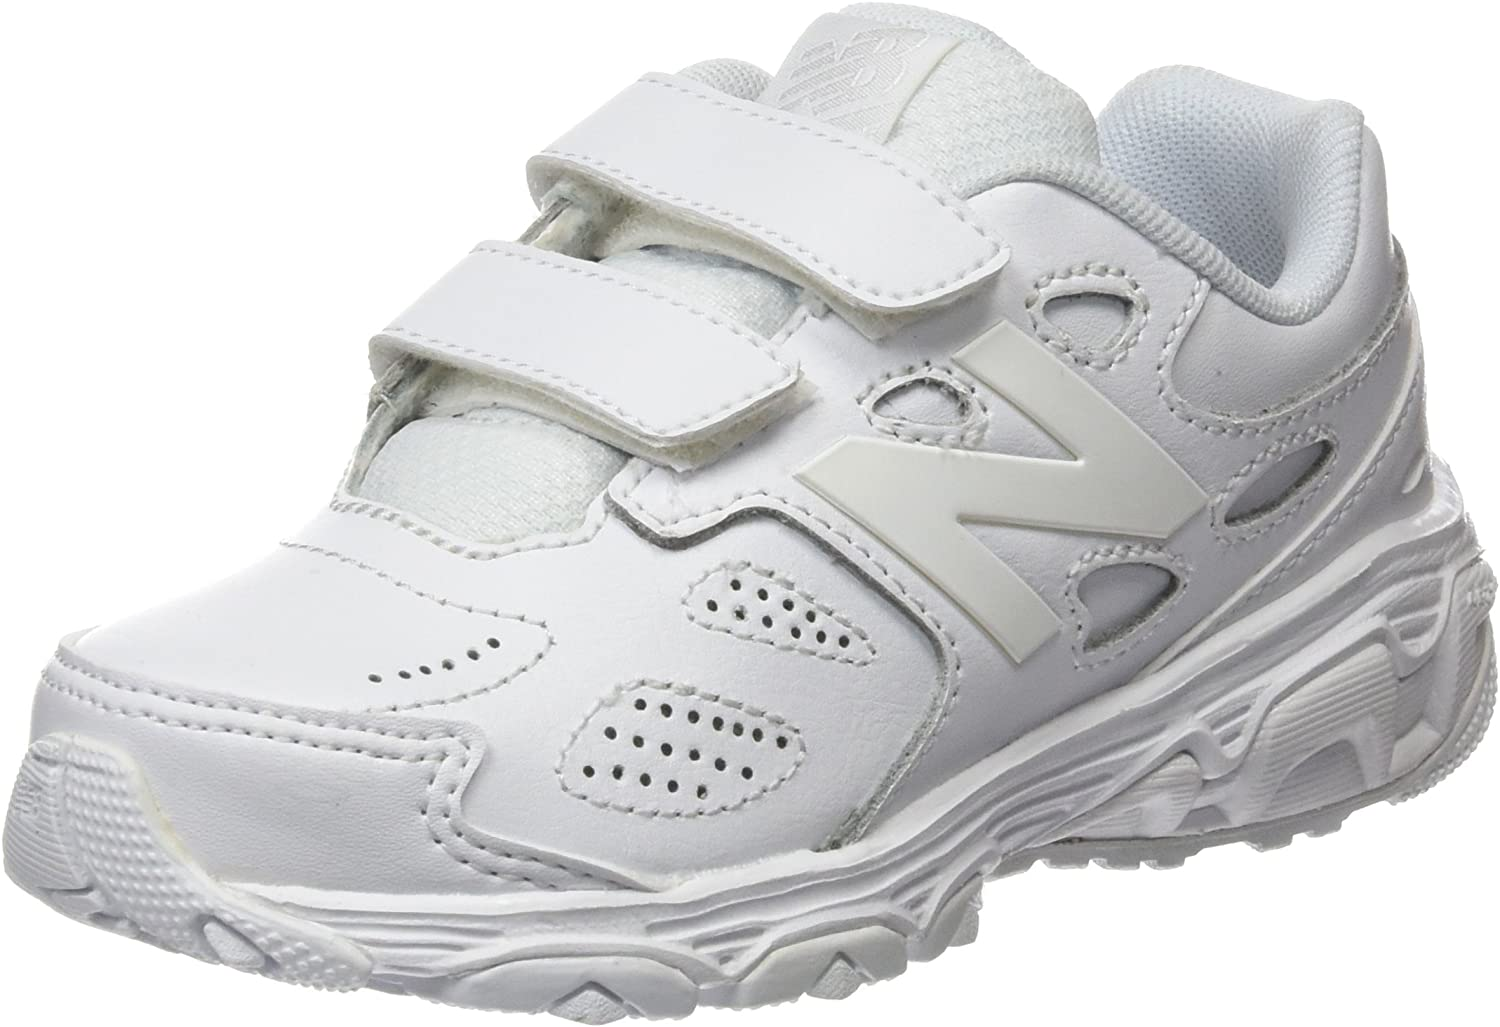 New Balance 680, Zapatillas de Running Unisex Niños: Amazon.es: Zapatos y complementos